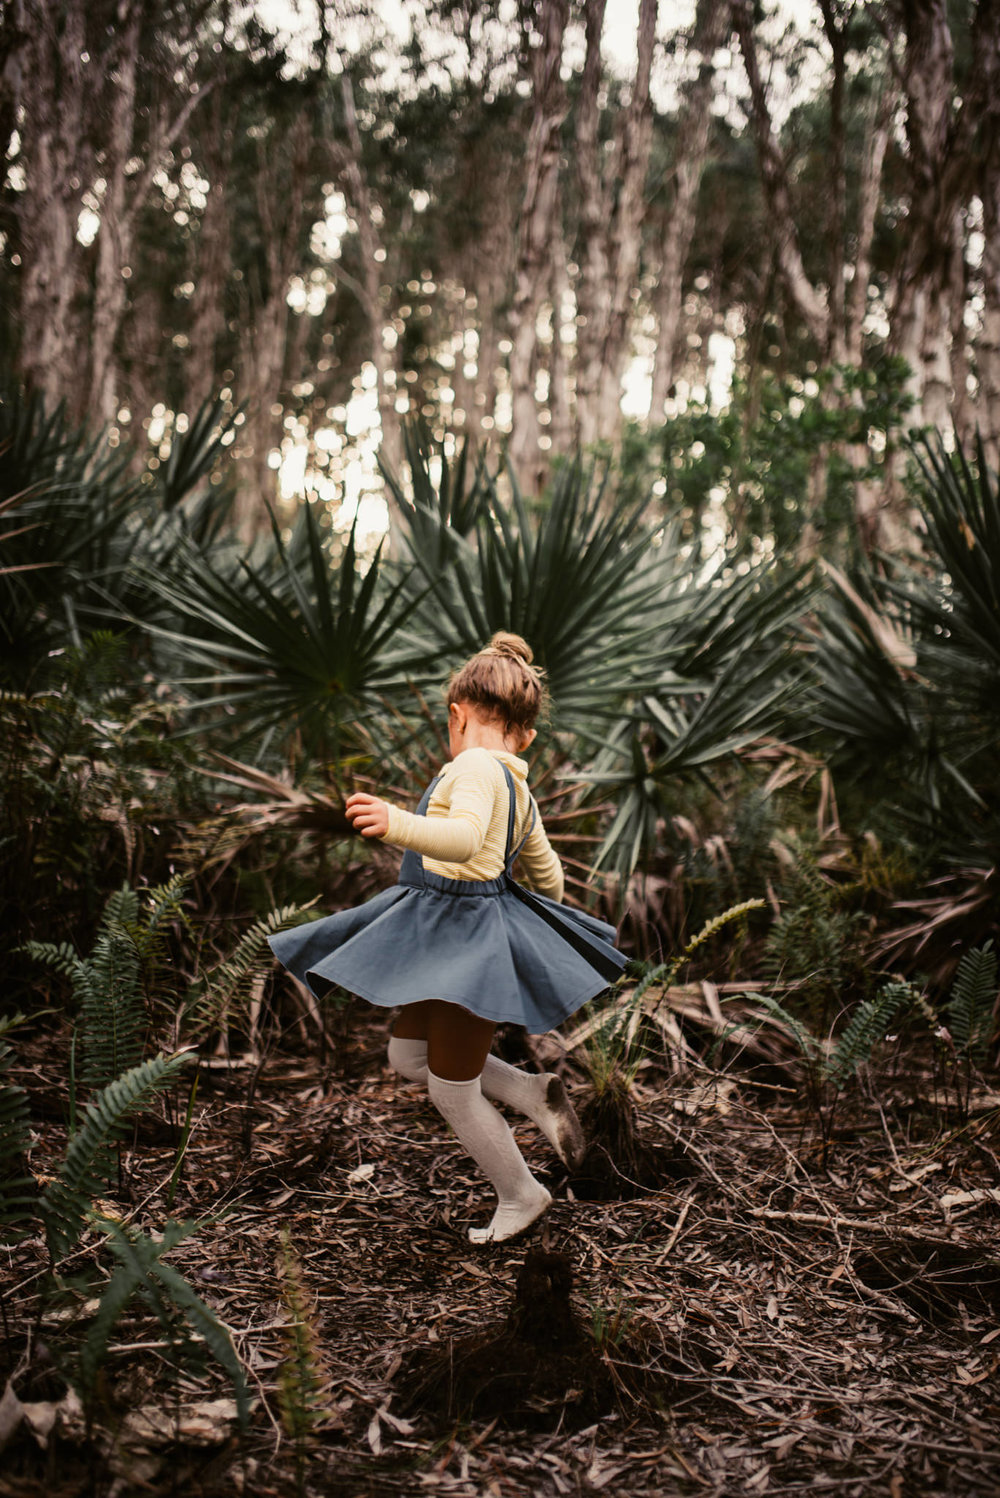 twyla jones photography - treasure coast florida - childrens adventure clothing commercial shoot--19.jpg